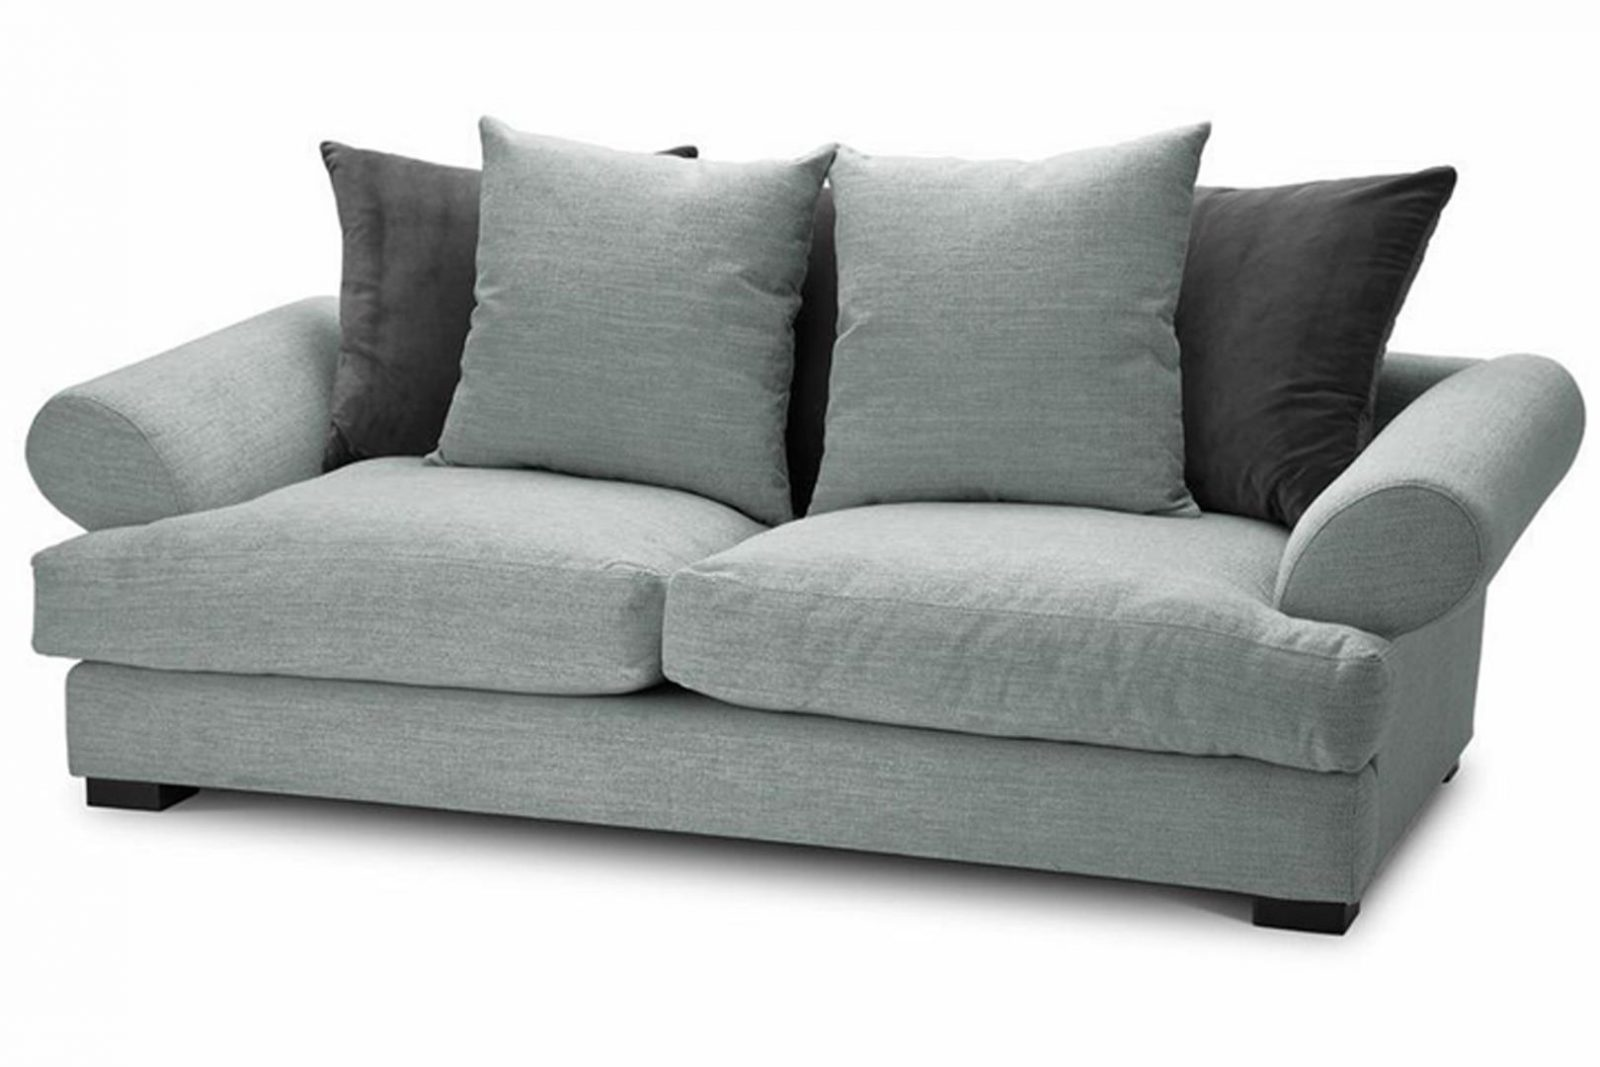 Belgravia sofa harley just british sofas belgravia luxury sofas at just british sofas in parisarafo Image collections